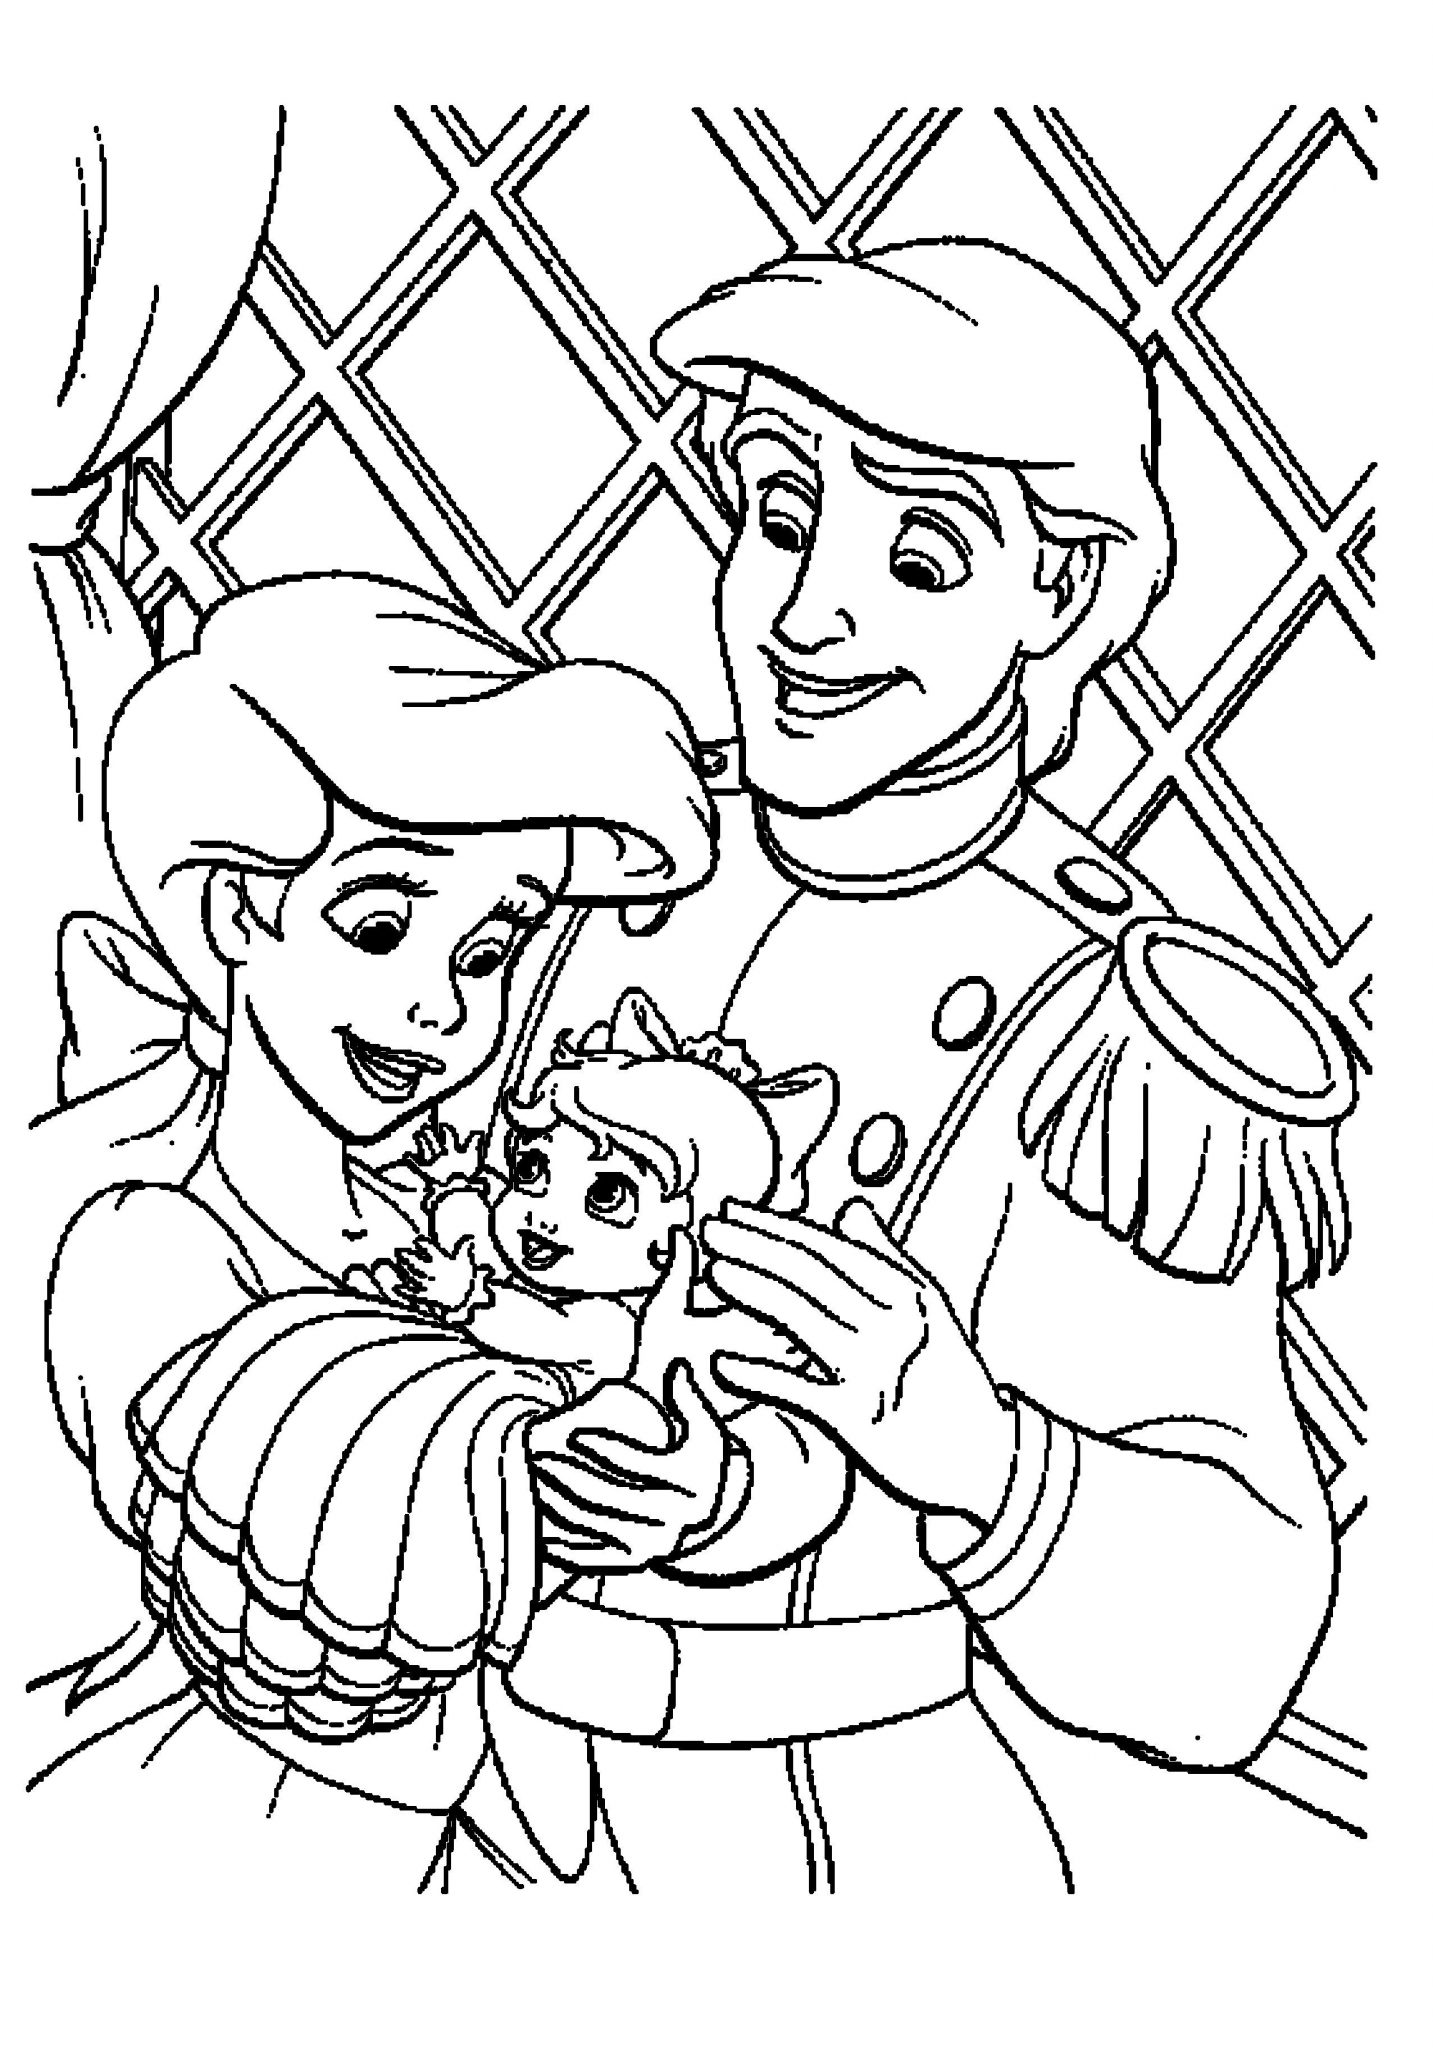 the little mermaid coloring page the little mermaid coloring pages allkidsnetworkcom the mermaid coloring page little